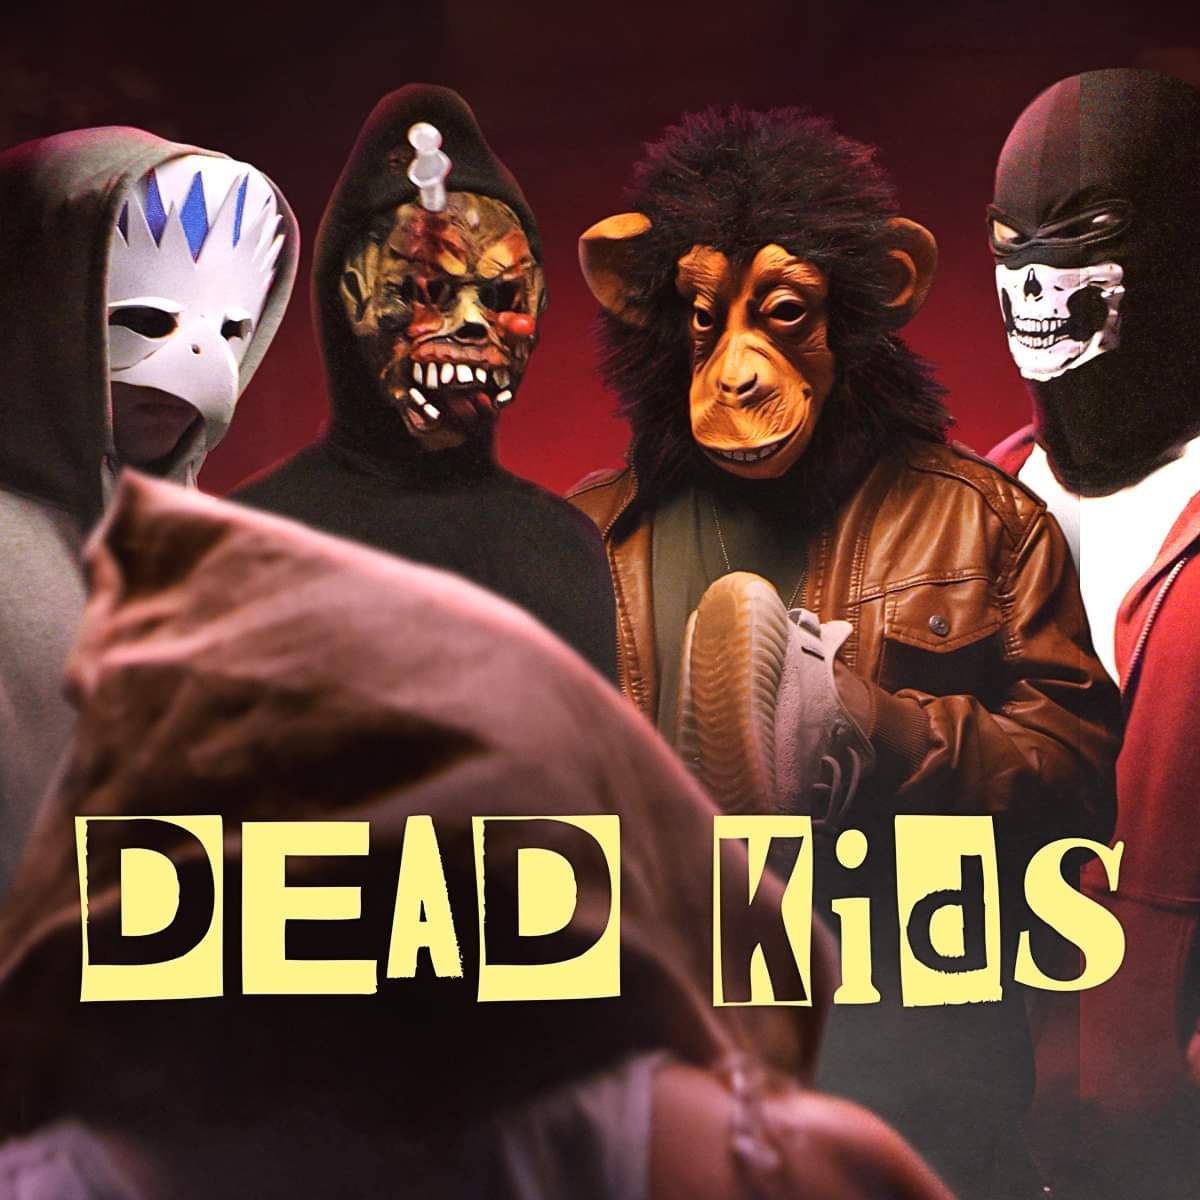 DEAD KIDS: Netflix Partners With Globe Studios To Stream Coming-Of-Age Teen Thriller Later This Year